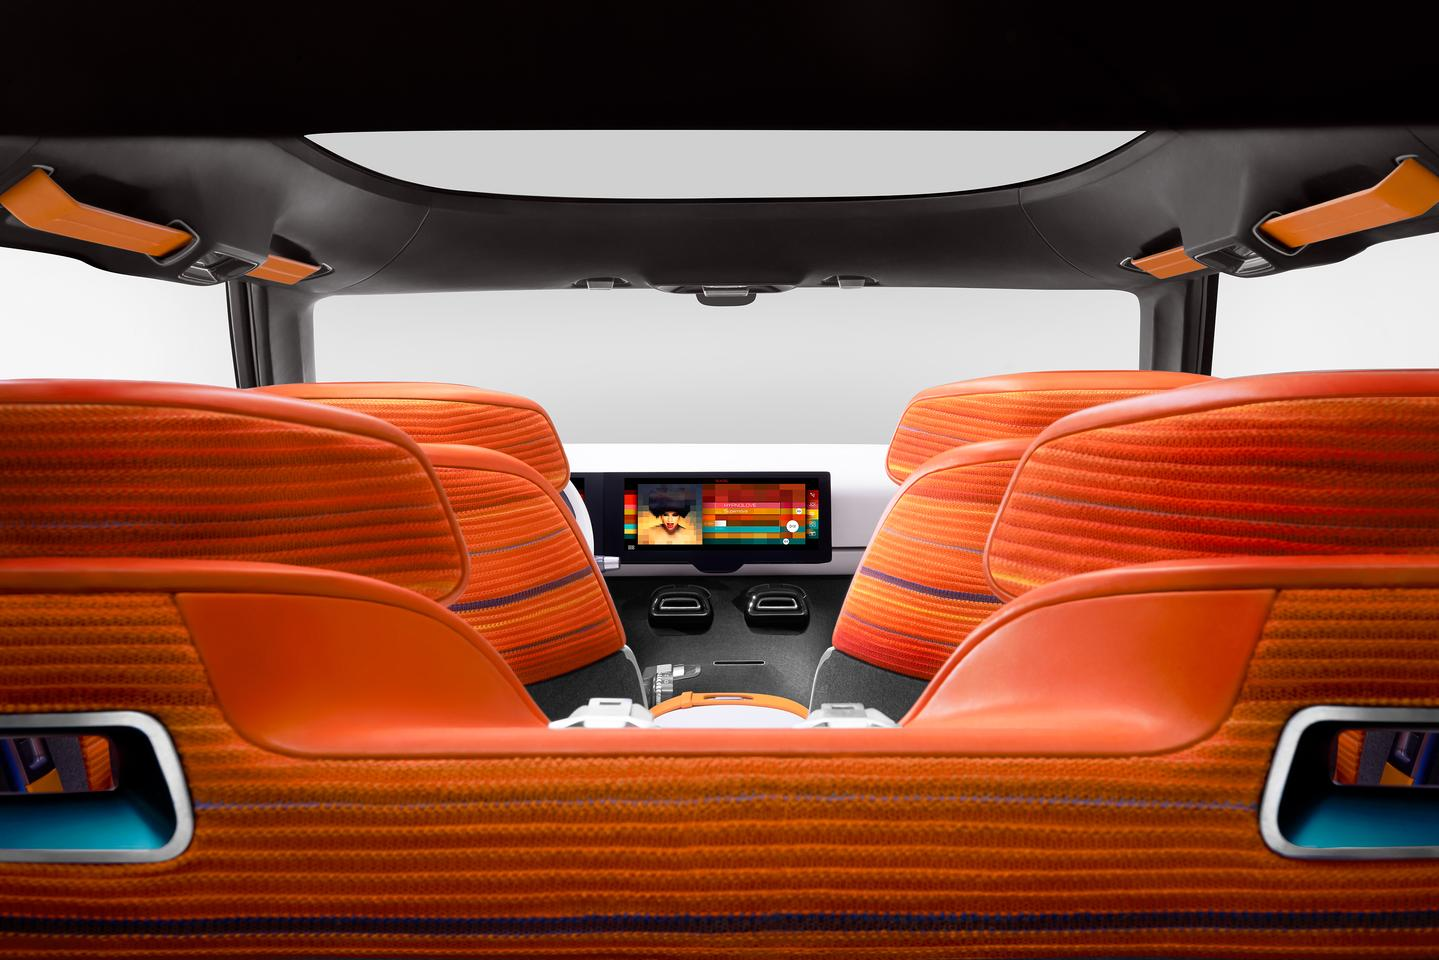 Inside the Aircross concept